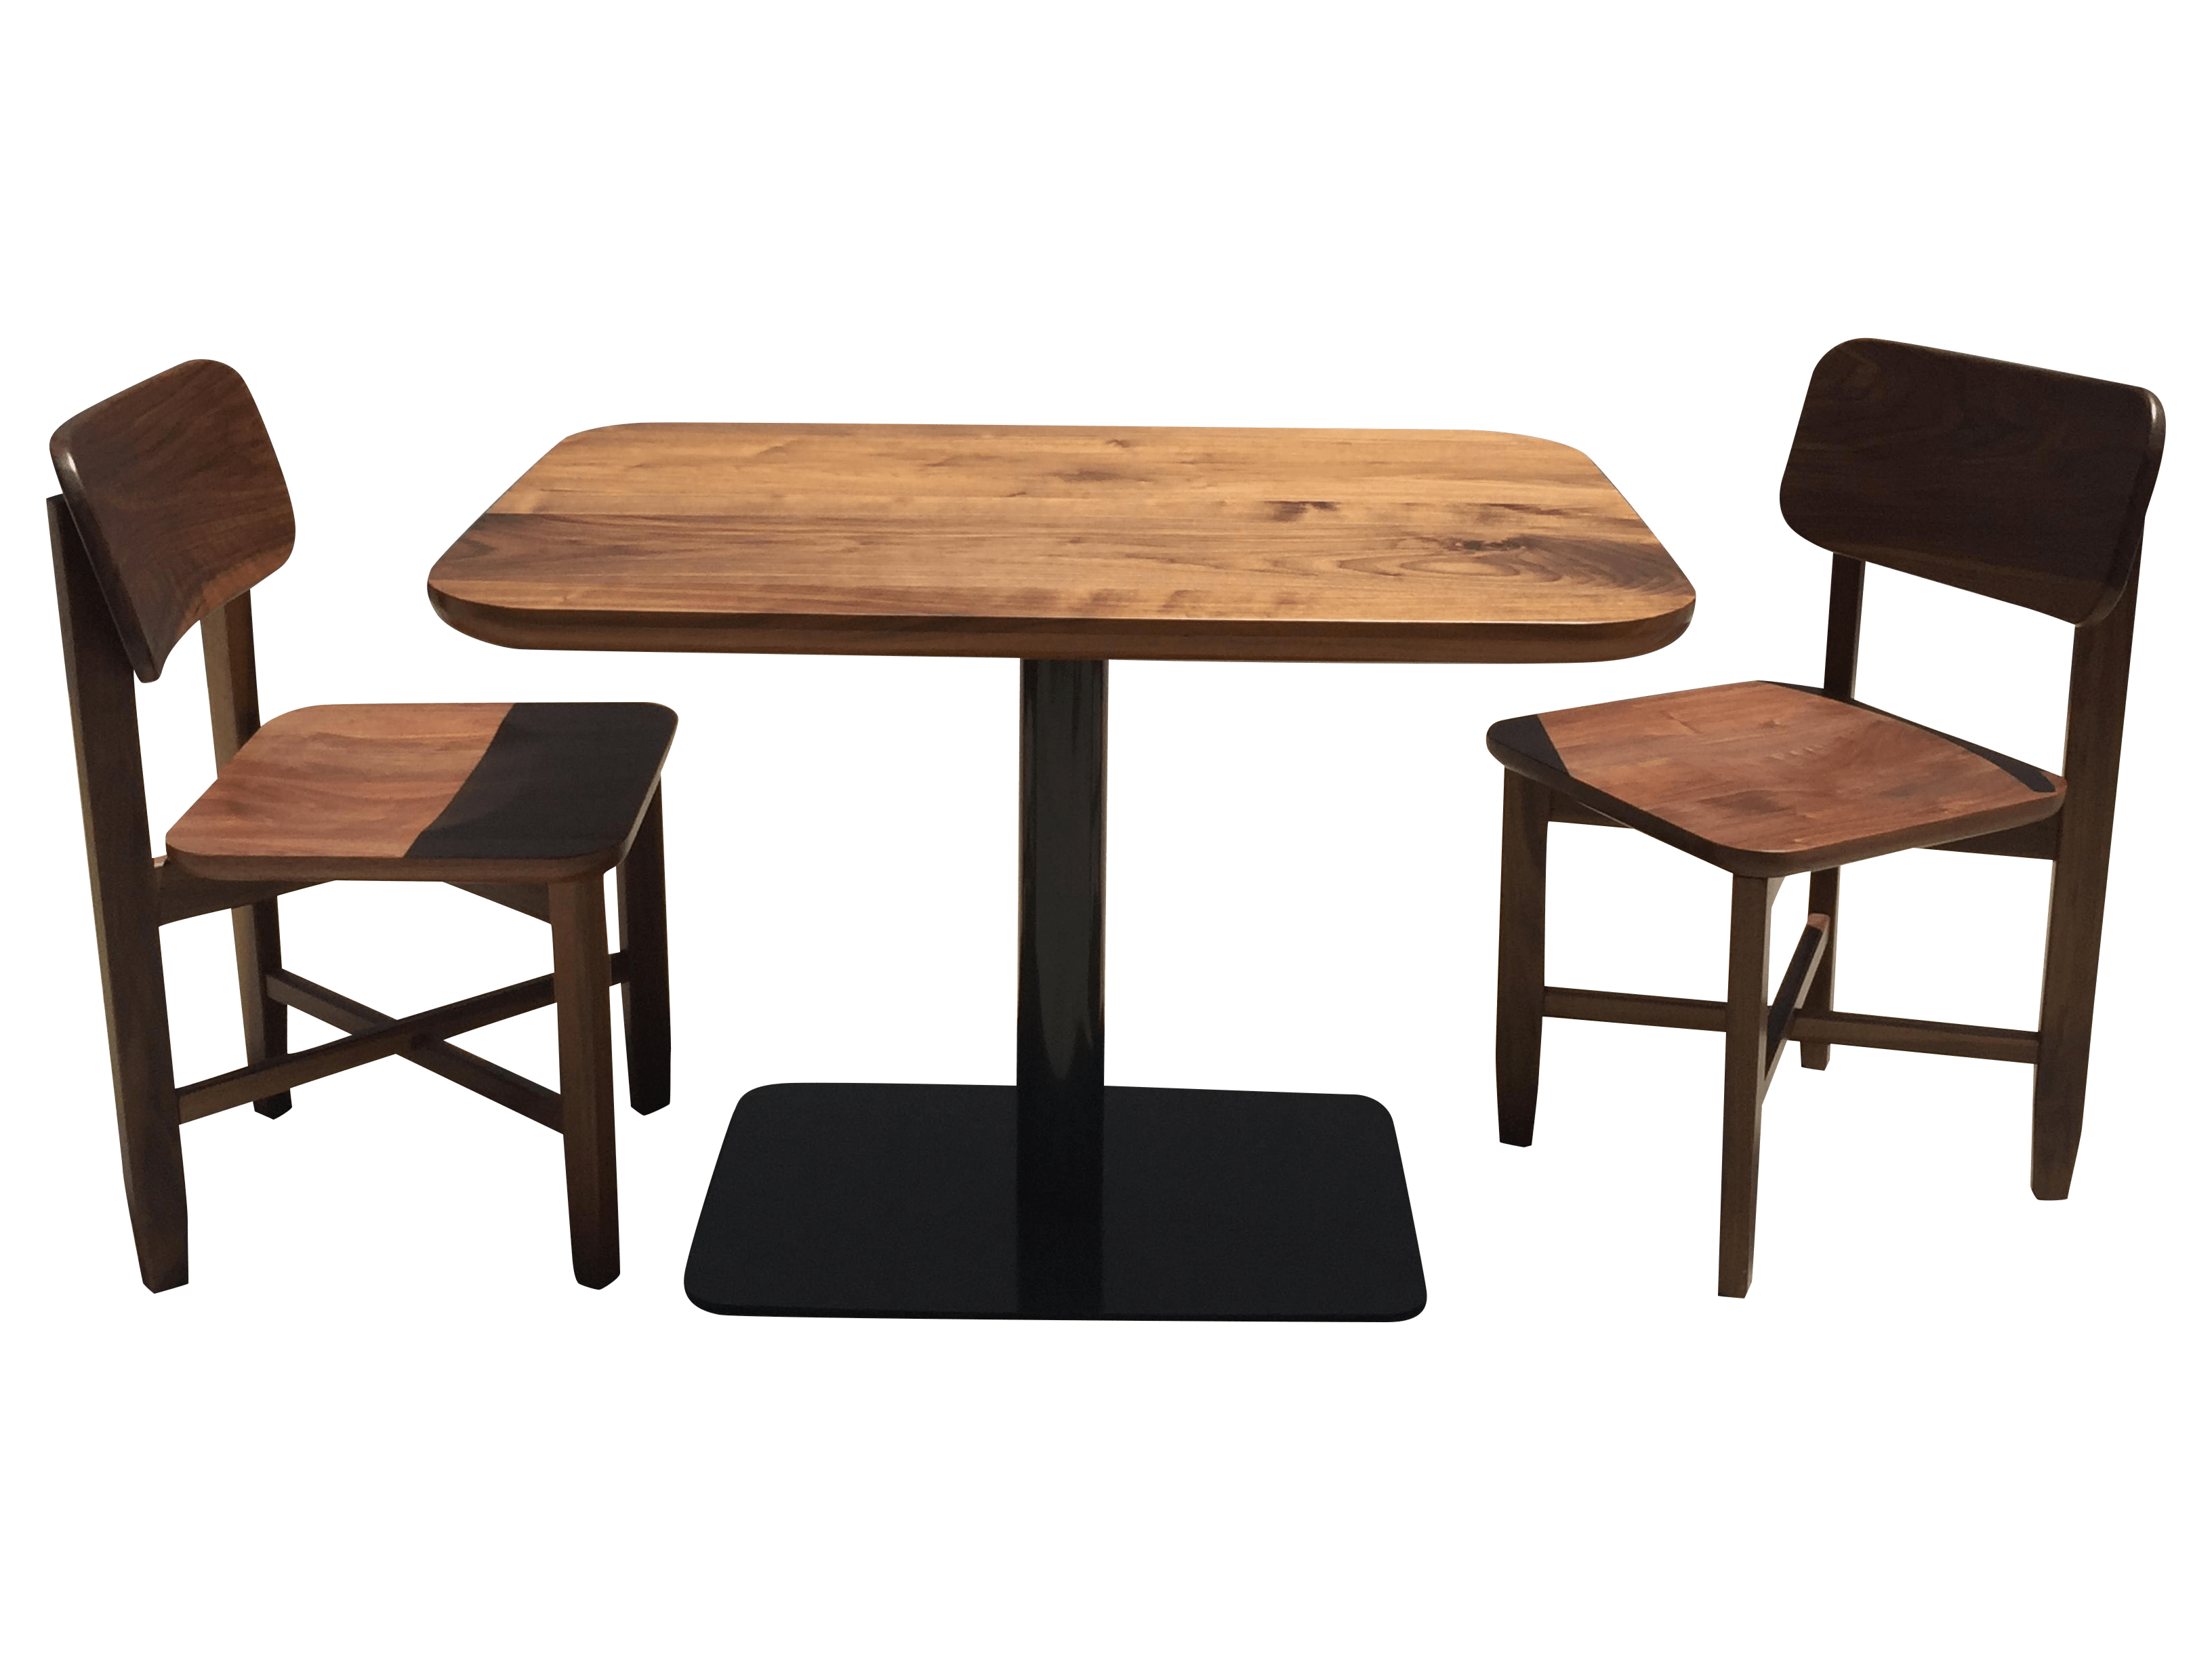 Cafe Tables Small Walnut Cafe Table And Two Chairs Handcrafted Chairish